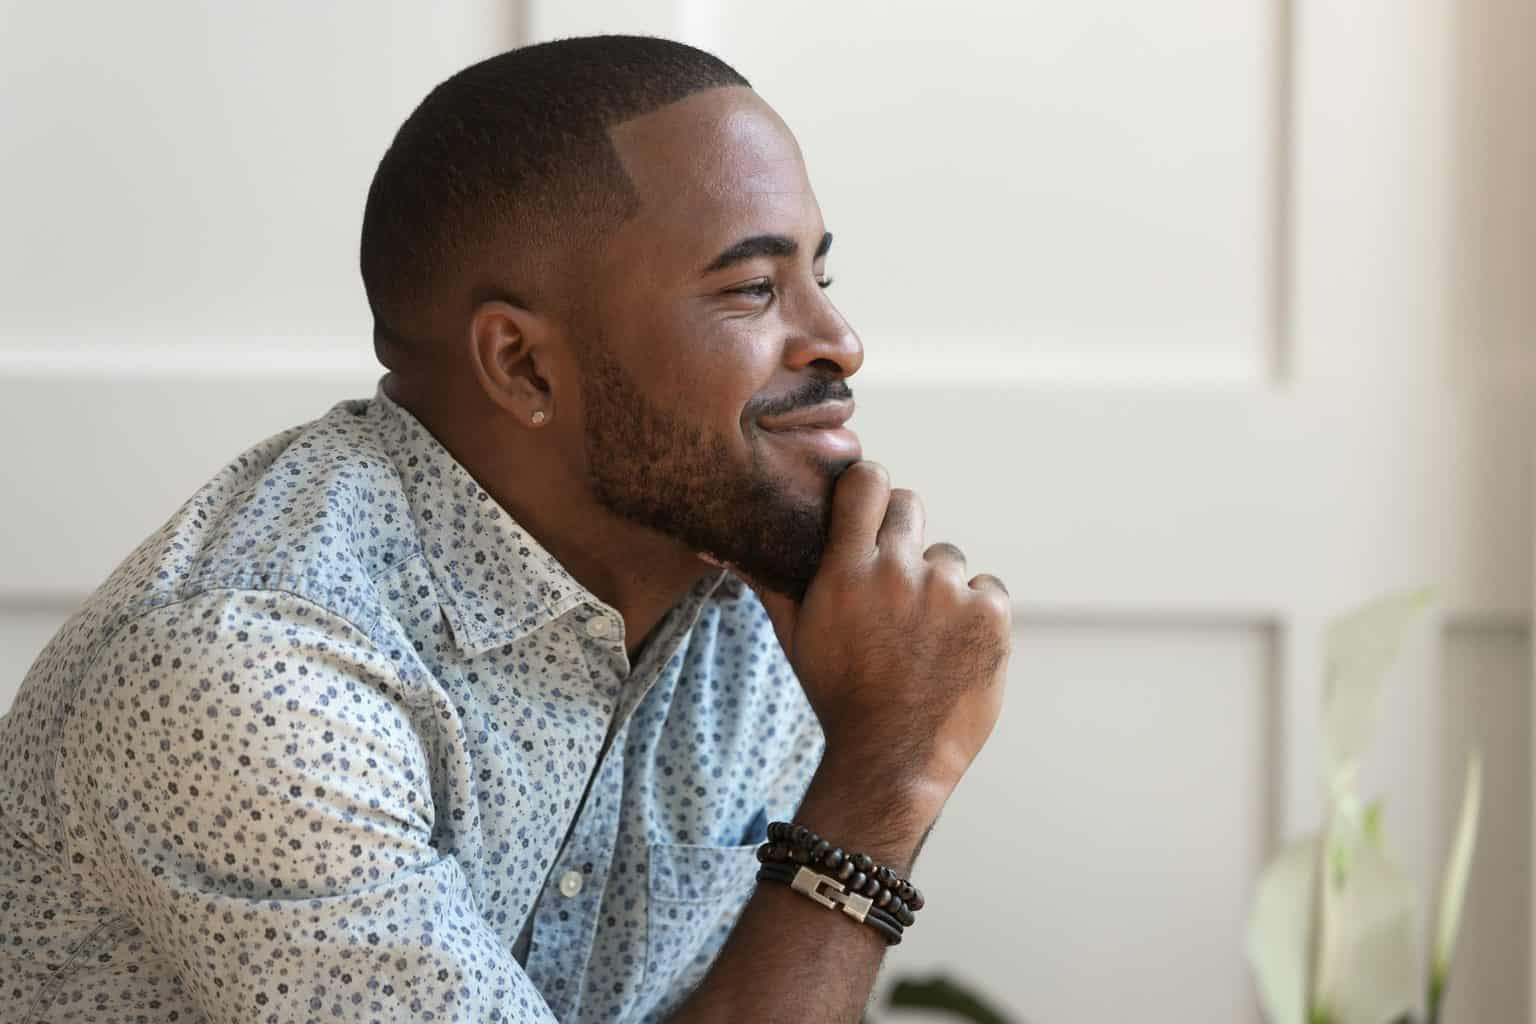 Dreamy calm african american young man looking away contemplating daydreaming sitting at home, thoughtful happy black guy dreaming thinking of good future, hoping meditating enjoy peace of mind